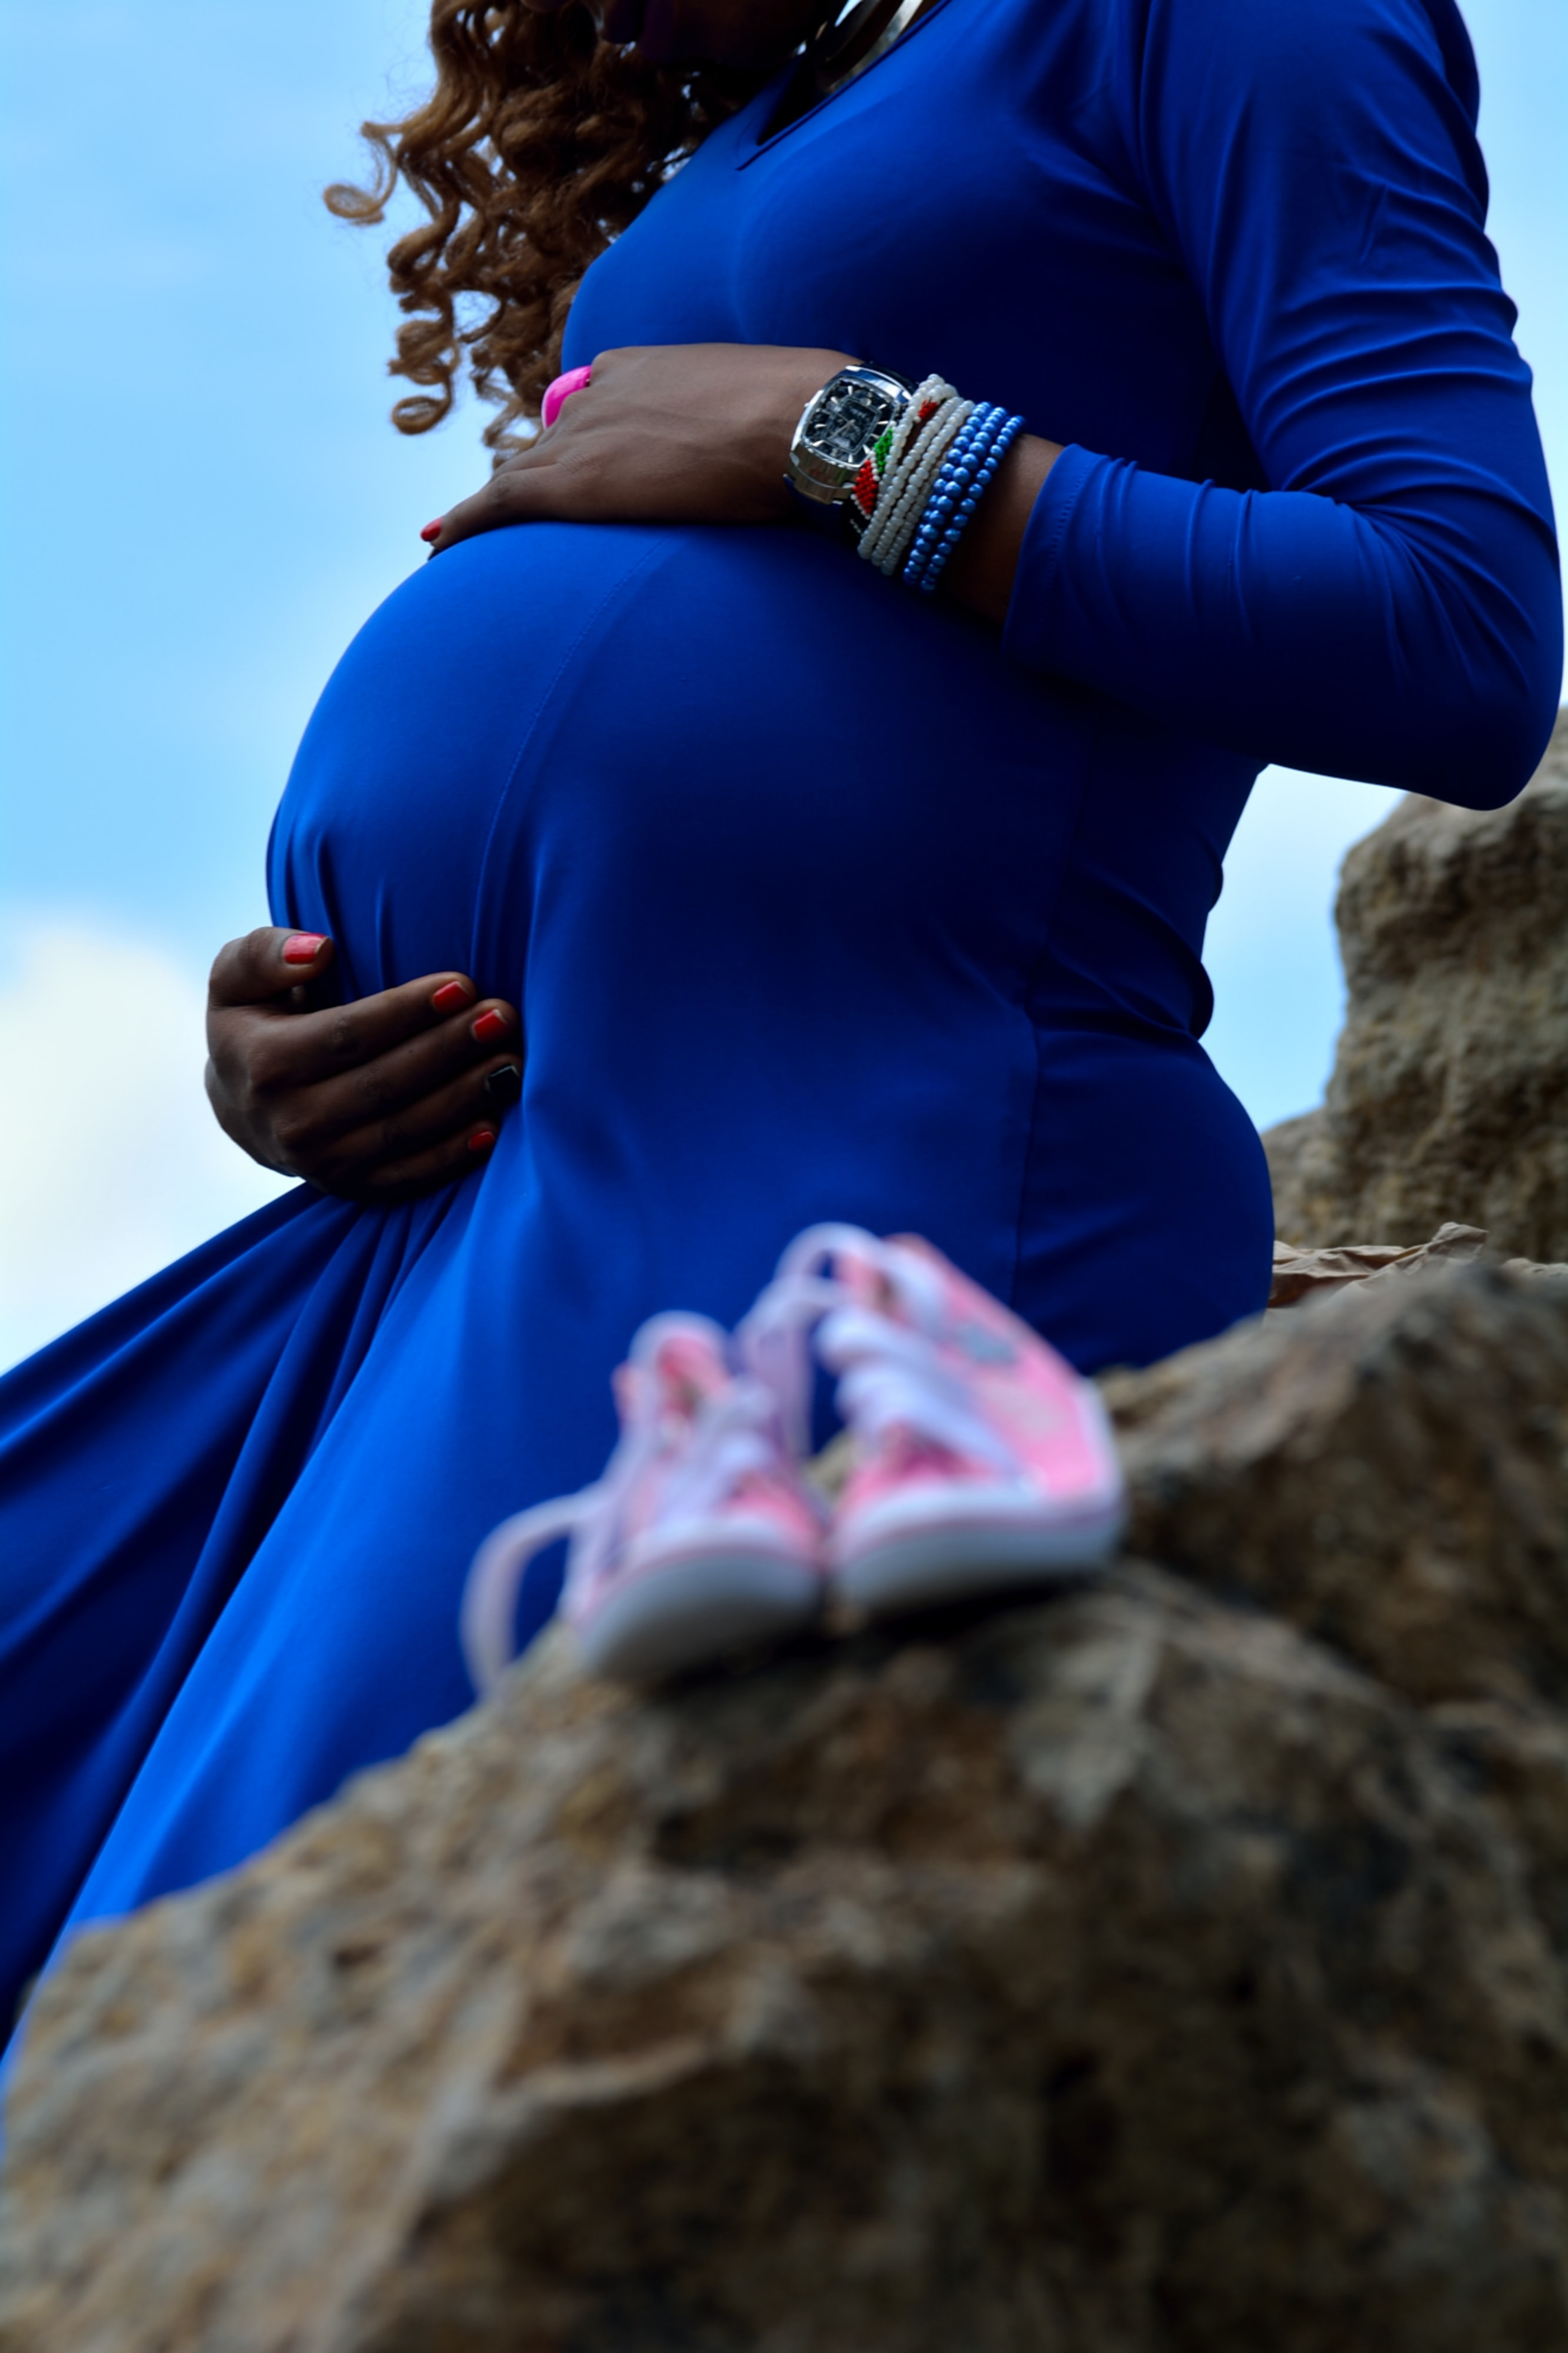 A pregnant woman's belly in a blue maternity dress.